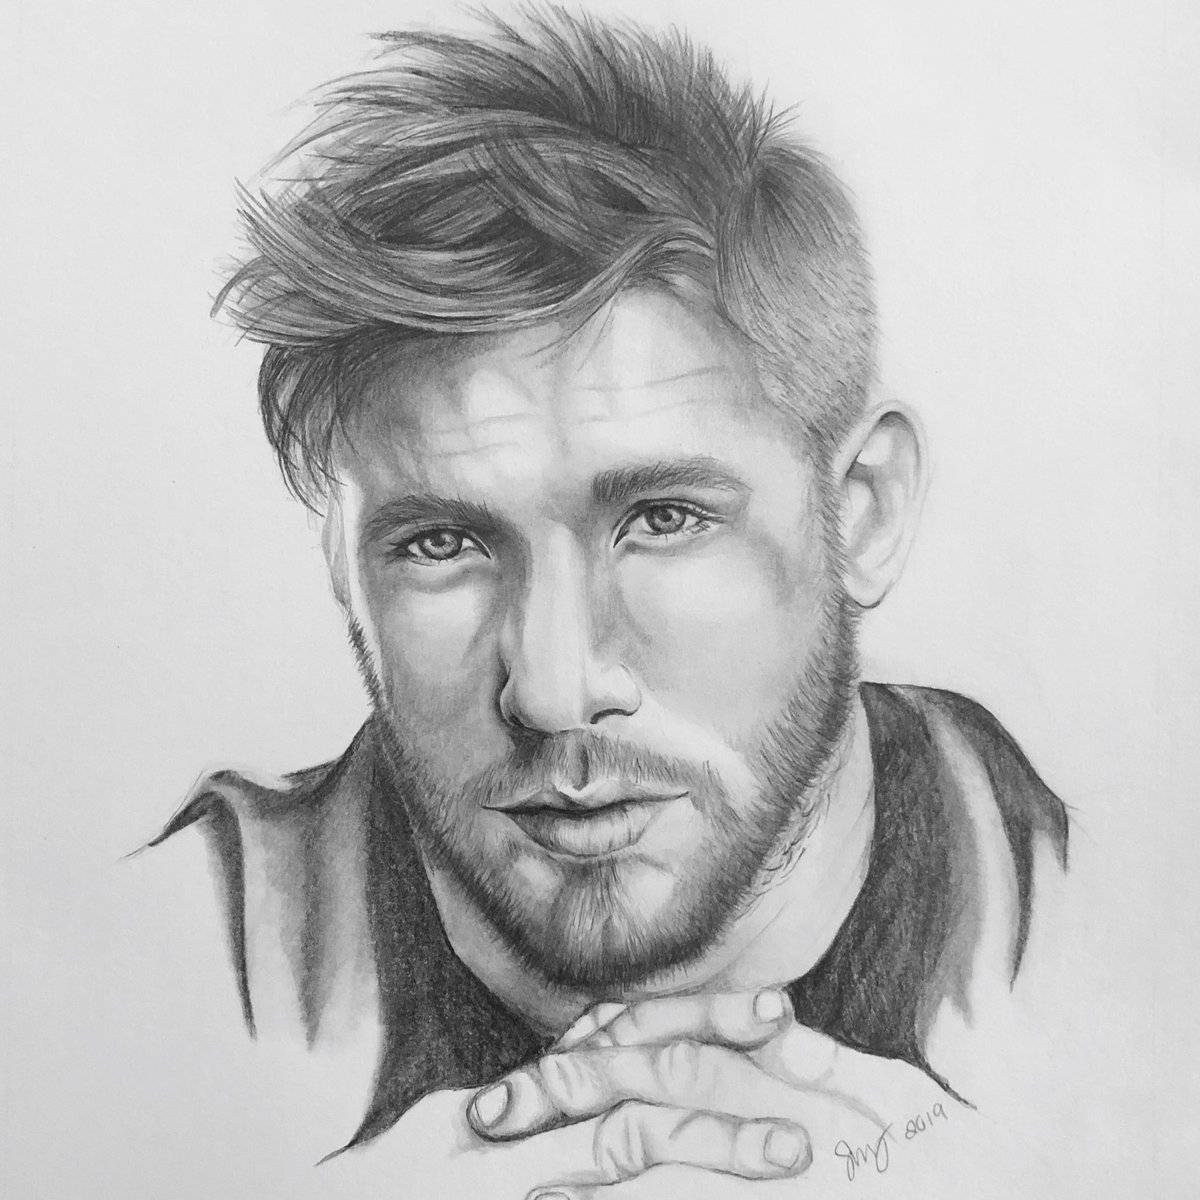 Completed my @Edelman11 drawing!!! #drawing #artist #julianedelman #amwriting #writingcommunity #WritersCommunity<br>http://pic.twitter.com/HbIRDOrJMs